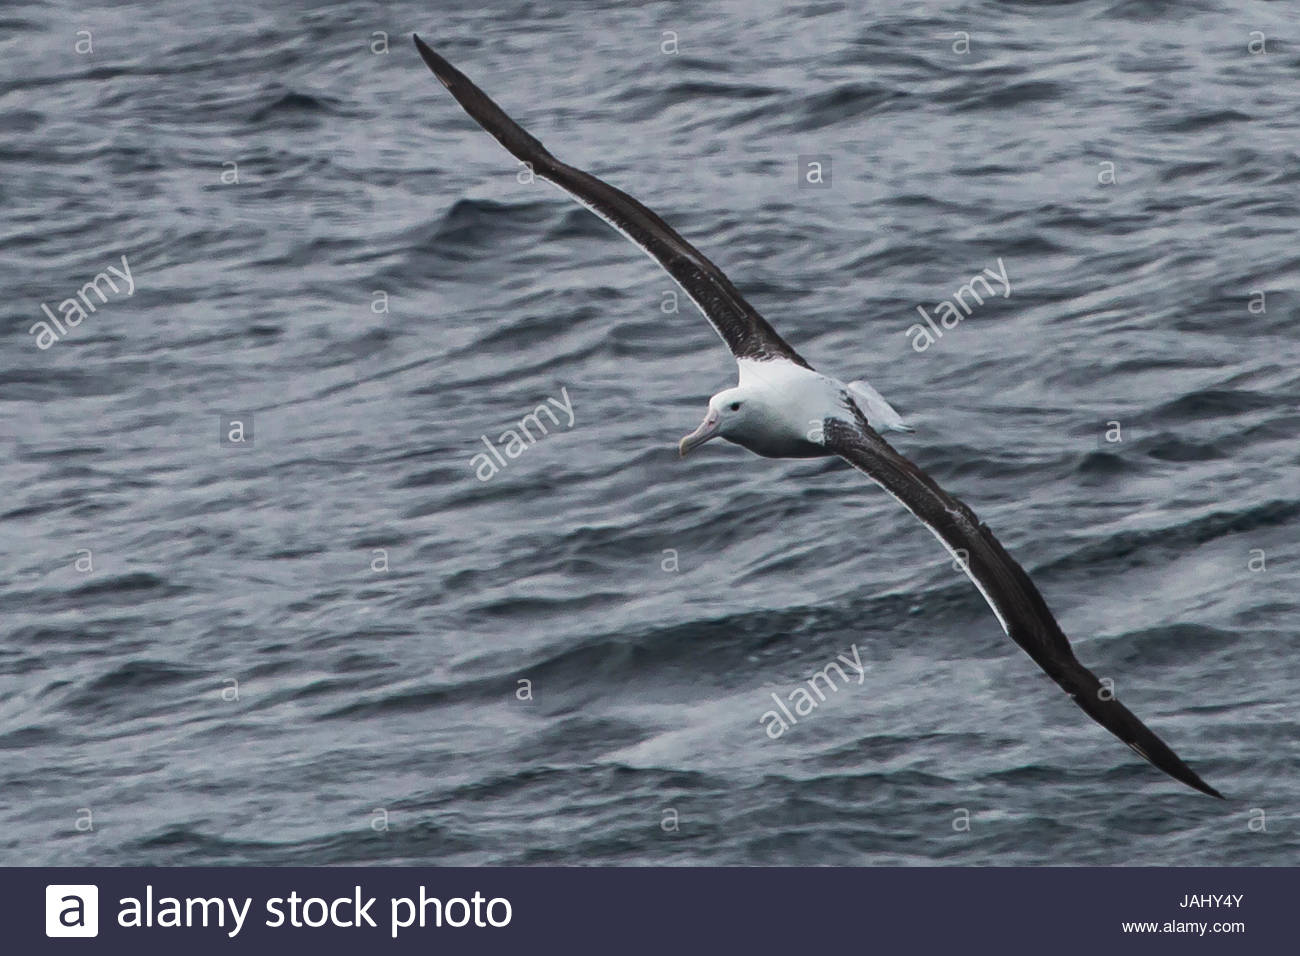 A portrait of a wandering albatross, Diomedea exulans, in flight over water. - Stock Image